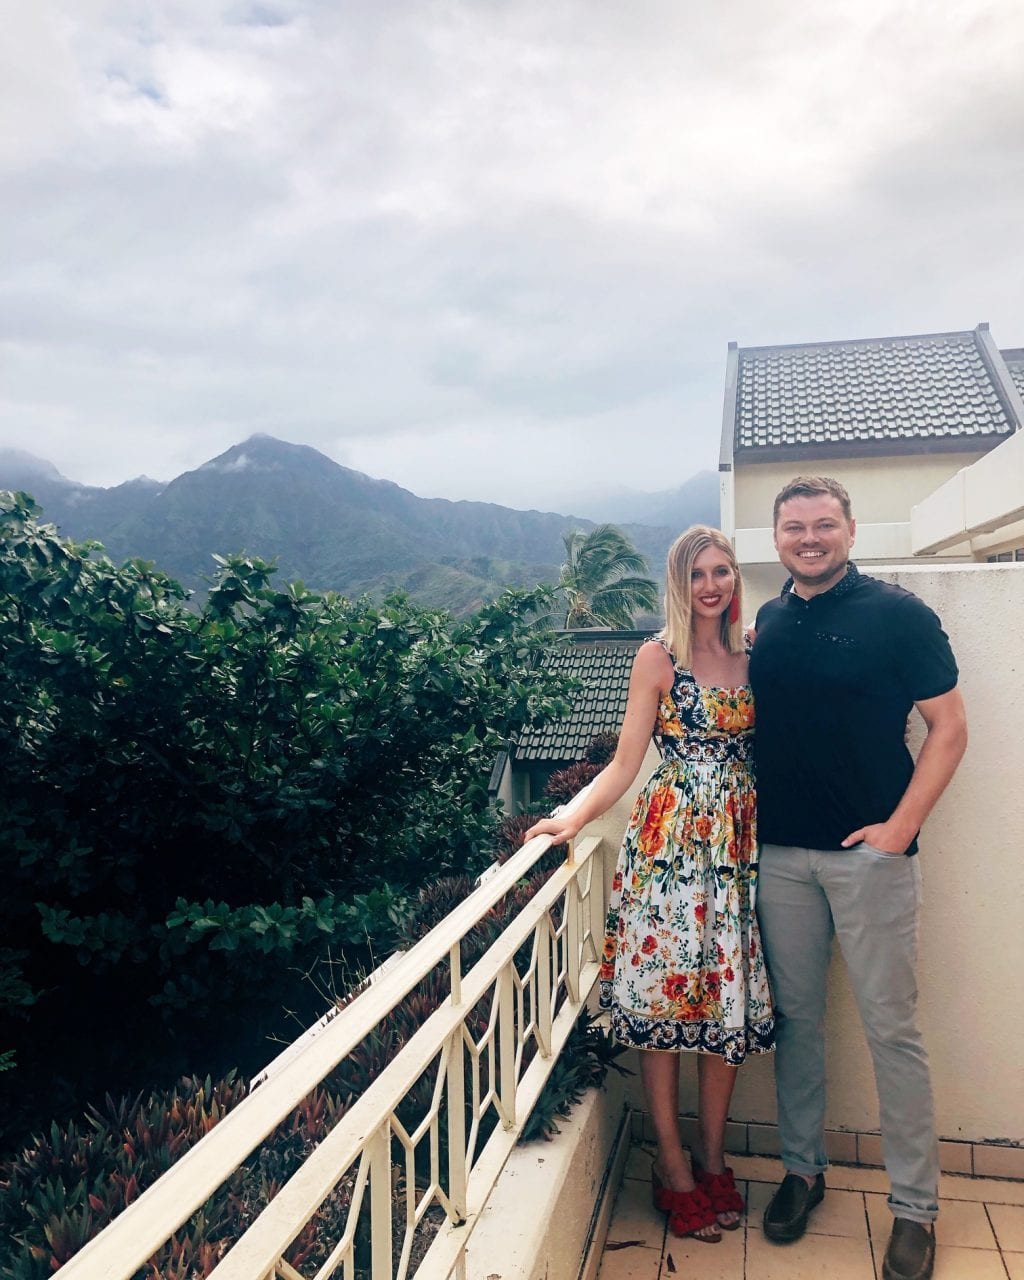 Princeville Kauai Our Favorite Travel Memories of 2019